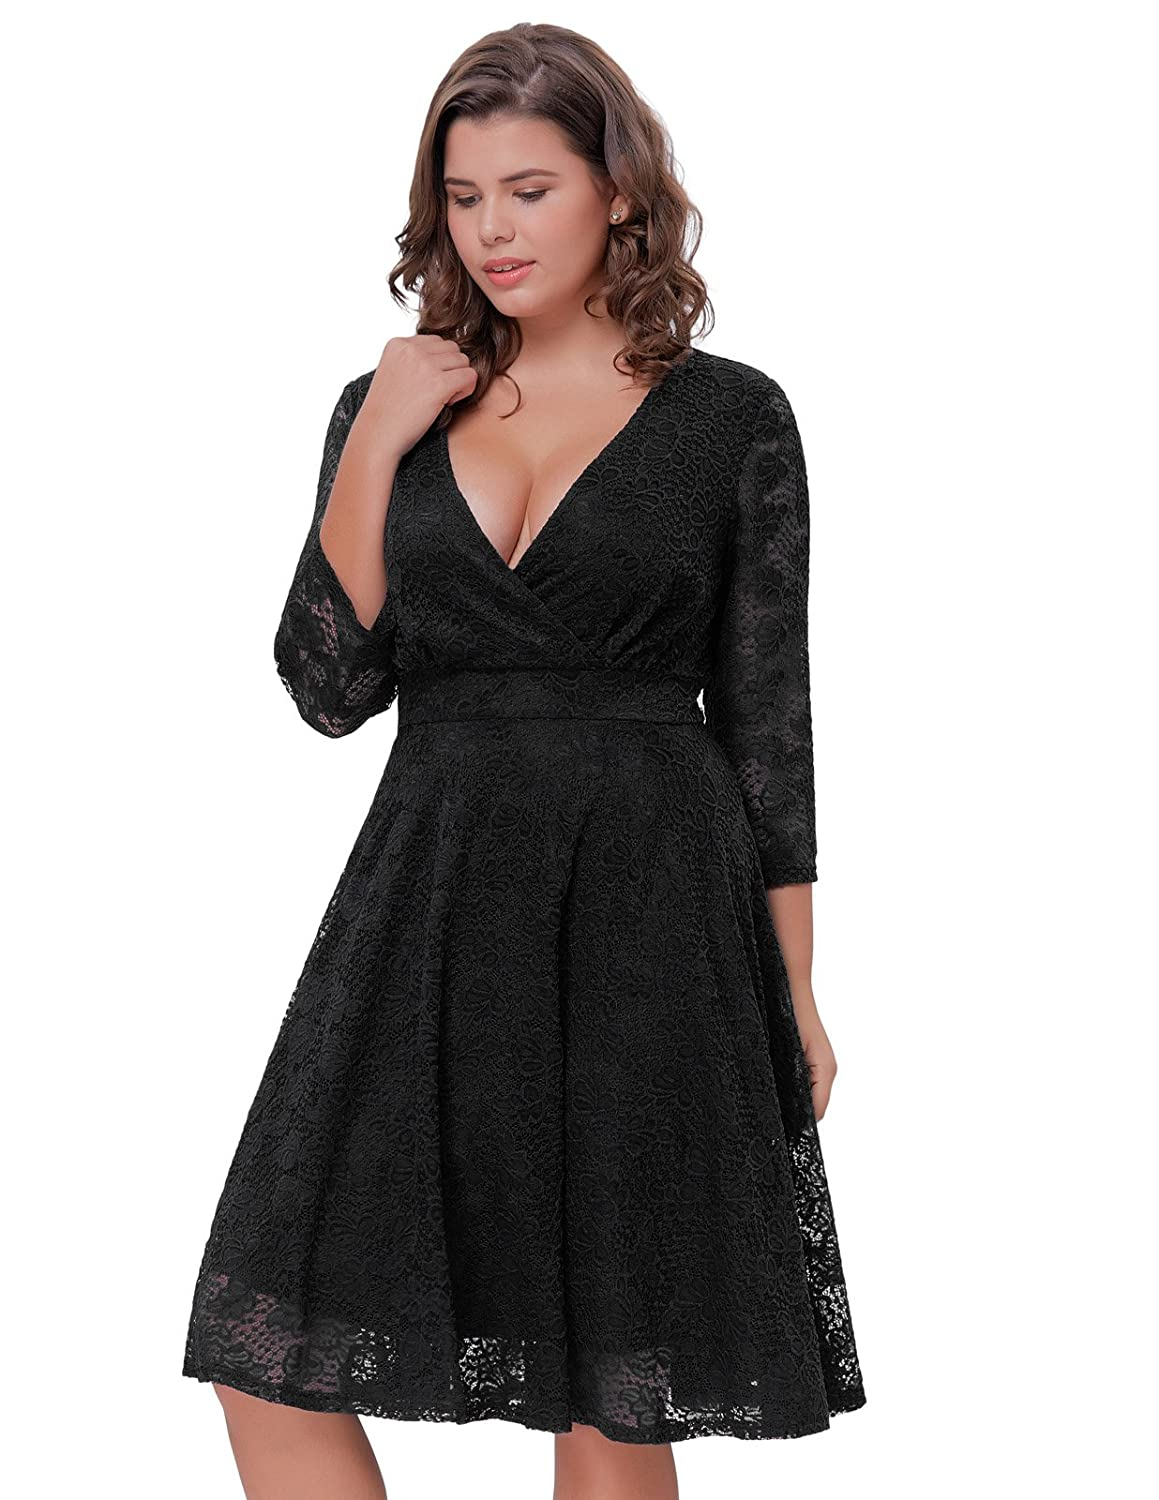 49a2a05ce11 Hanna Nikole Women Lace V-Neck 3 4 Sleeve Bridesmaid Wedding Flared Skater  Dress at Amazon Women s Clothing store